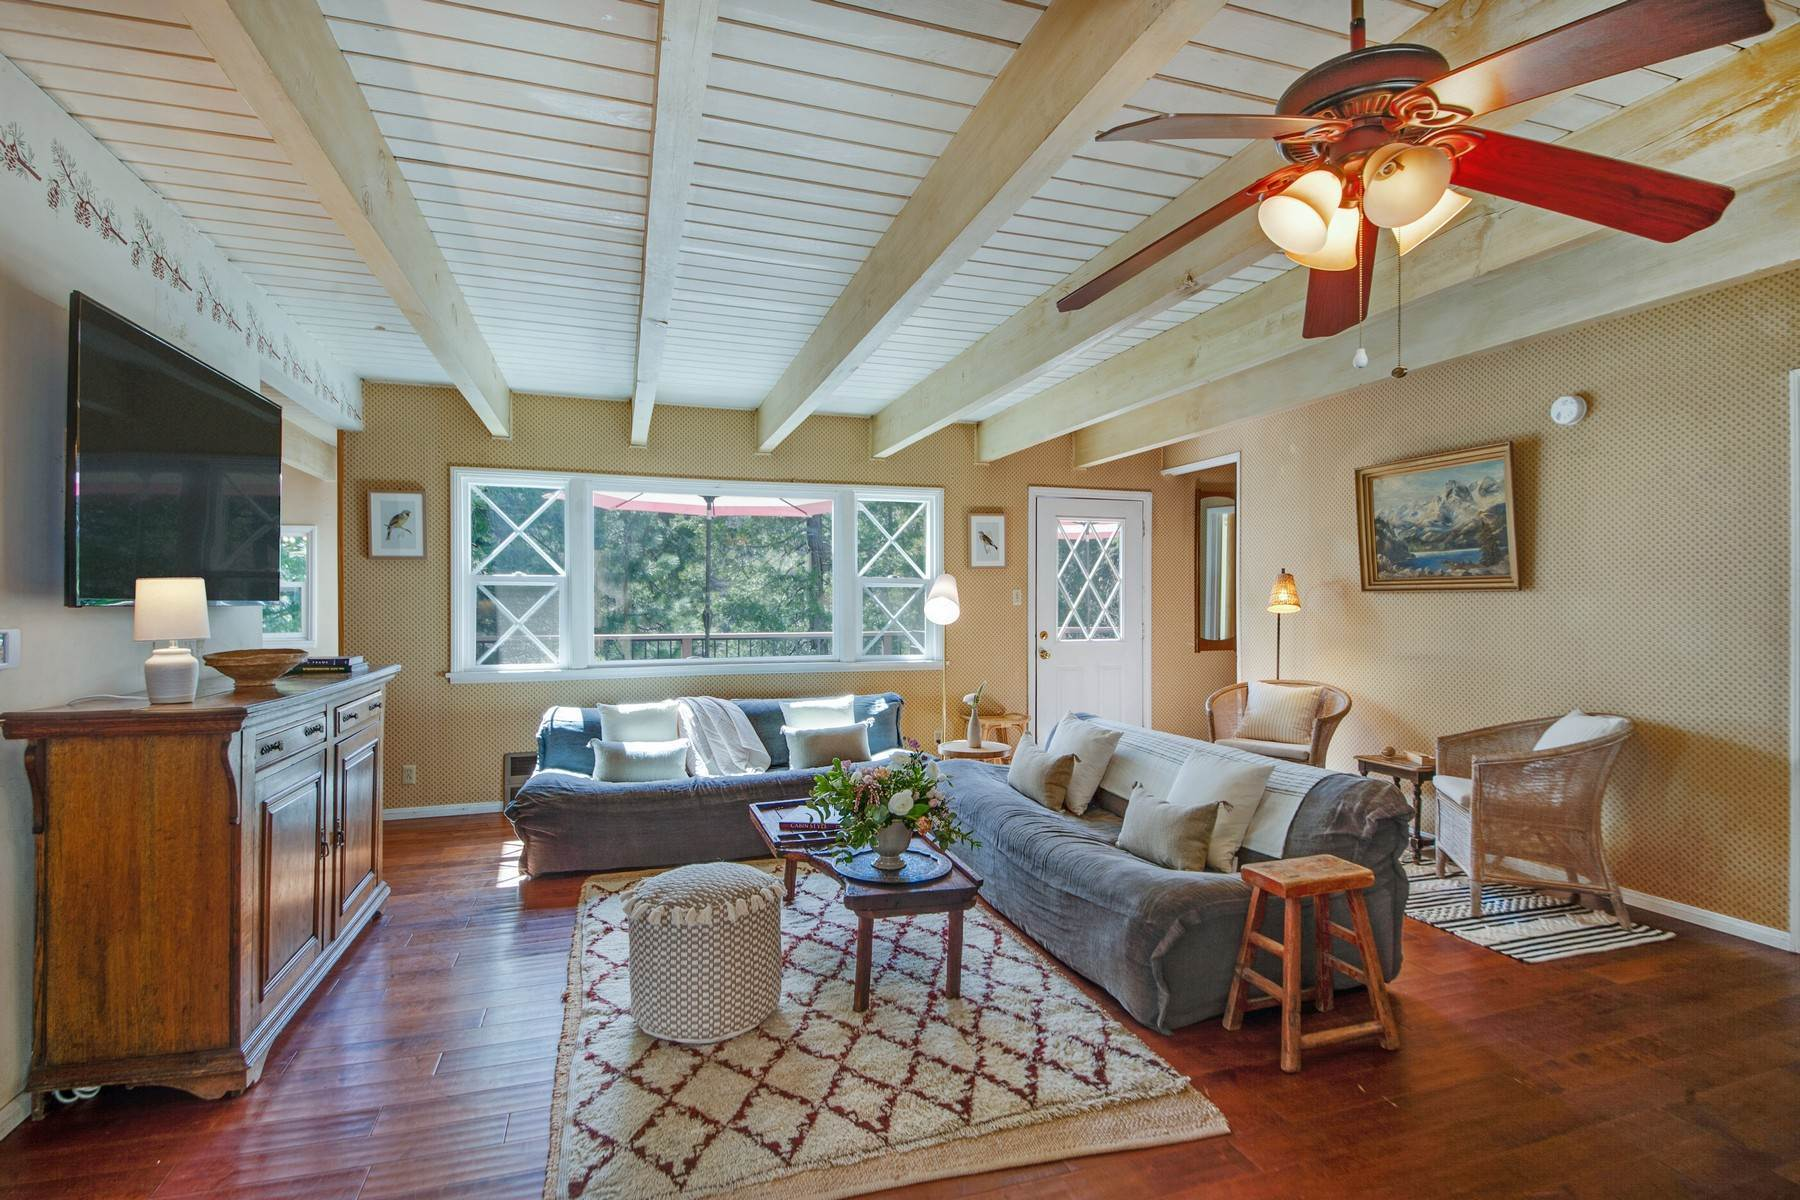 3. Single Family Homes for Sale at 142 John Muir Rd Lake Arrowhead, California 92352 United States